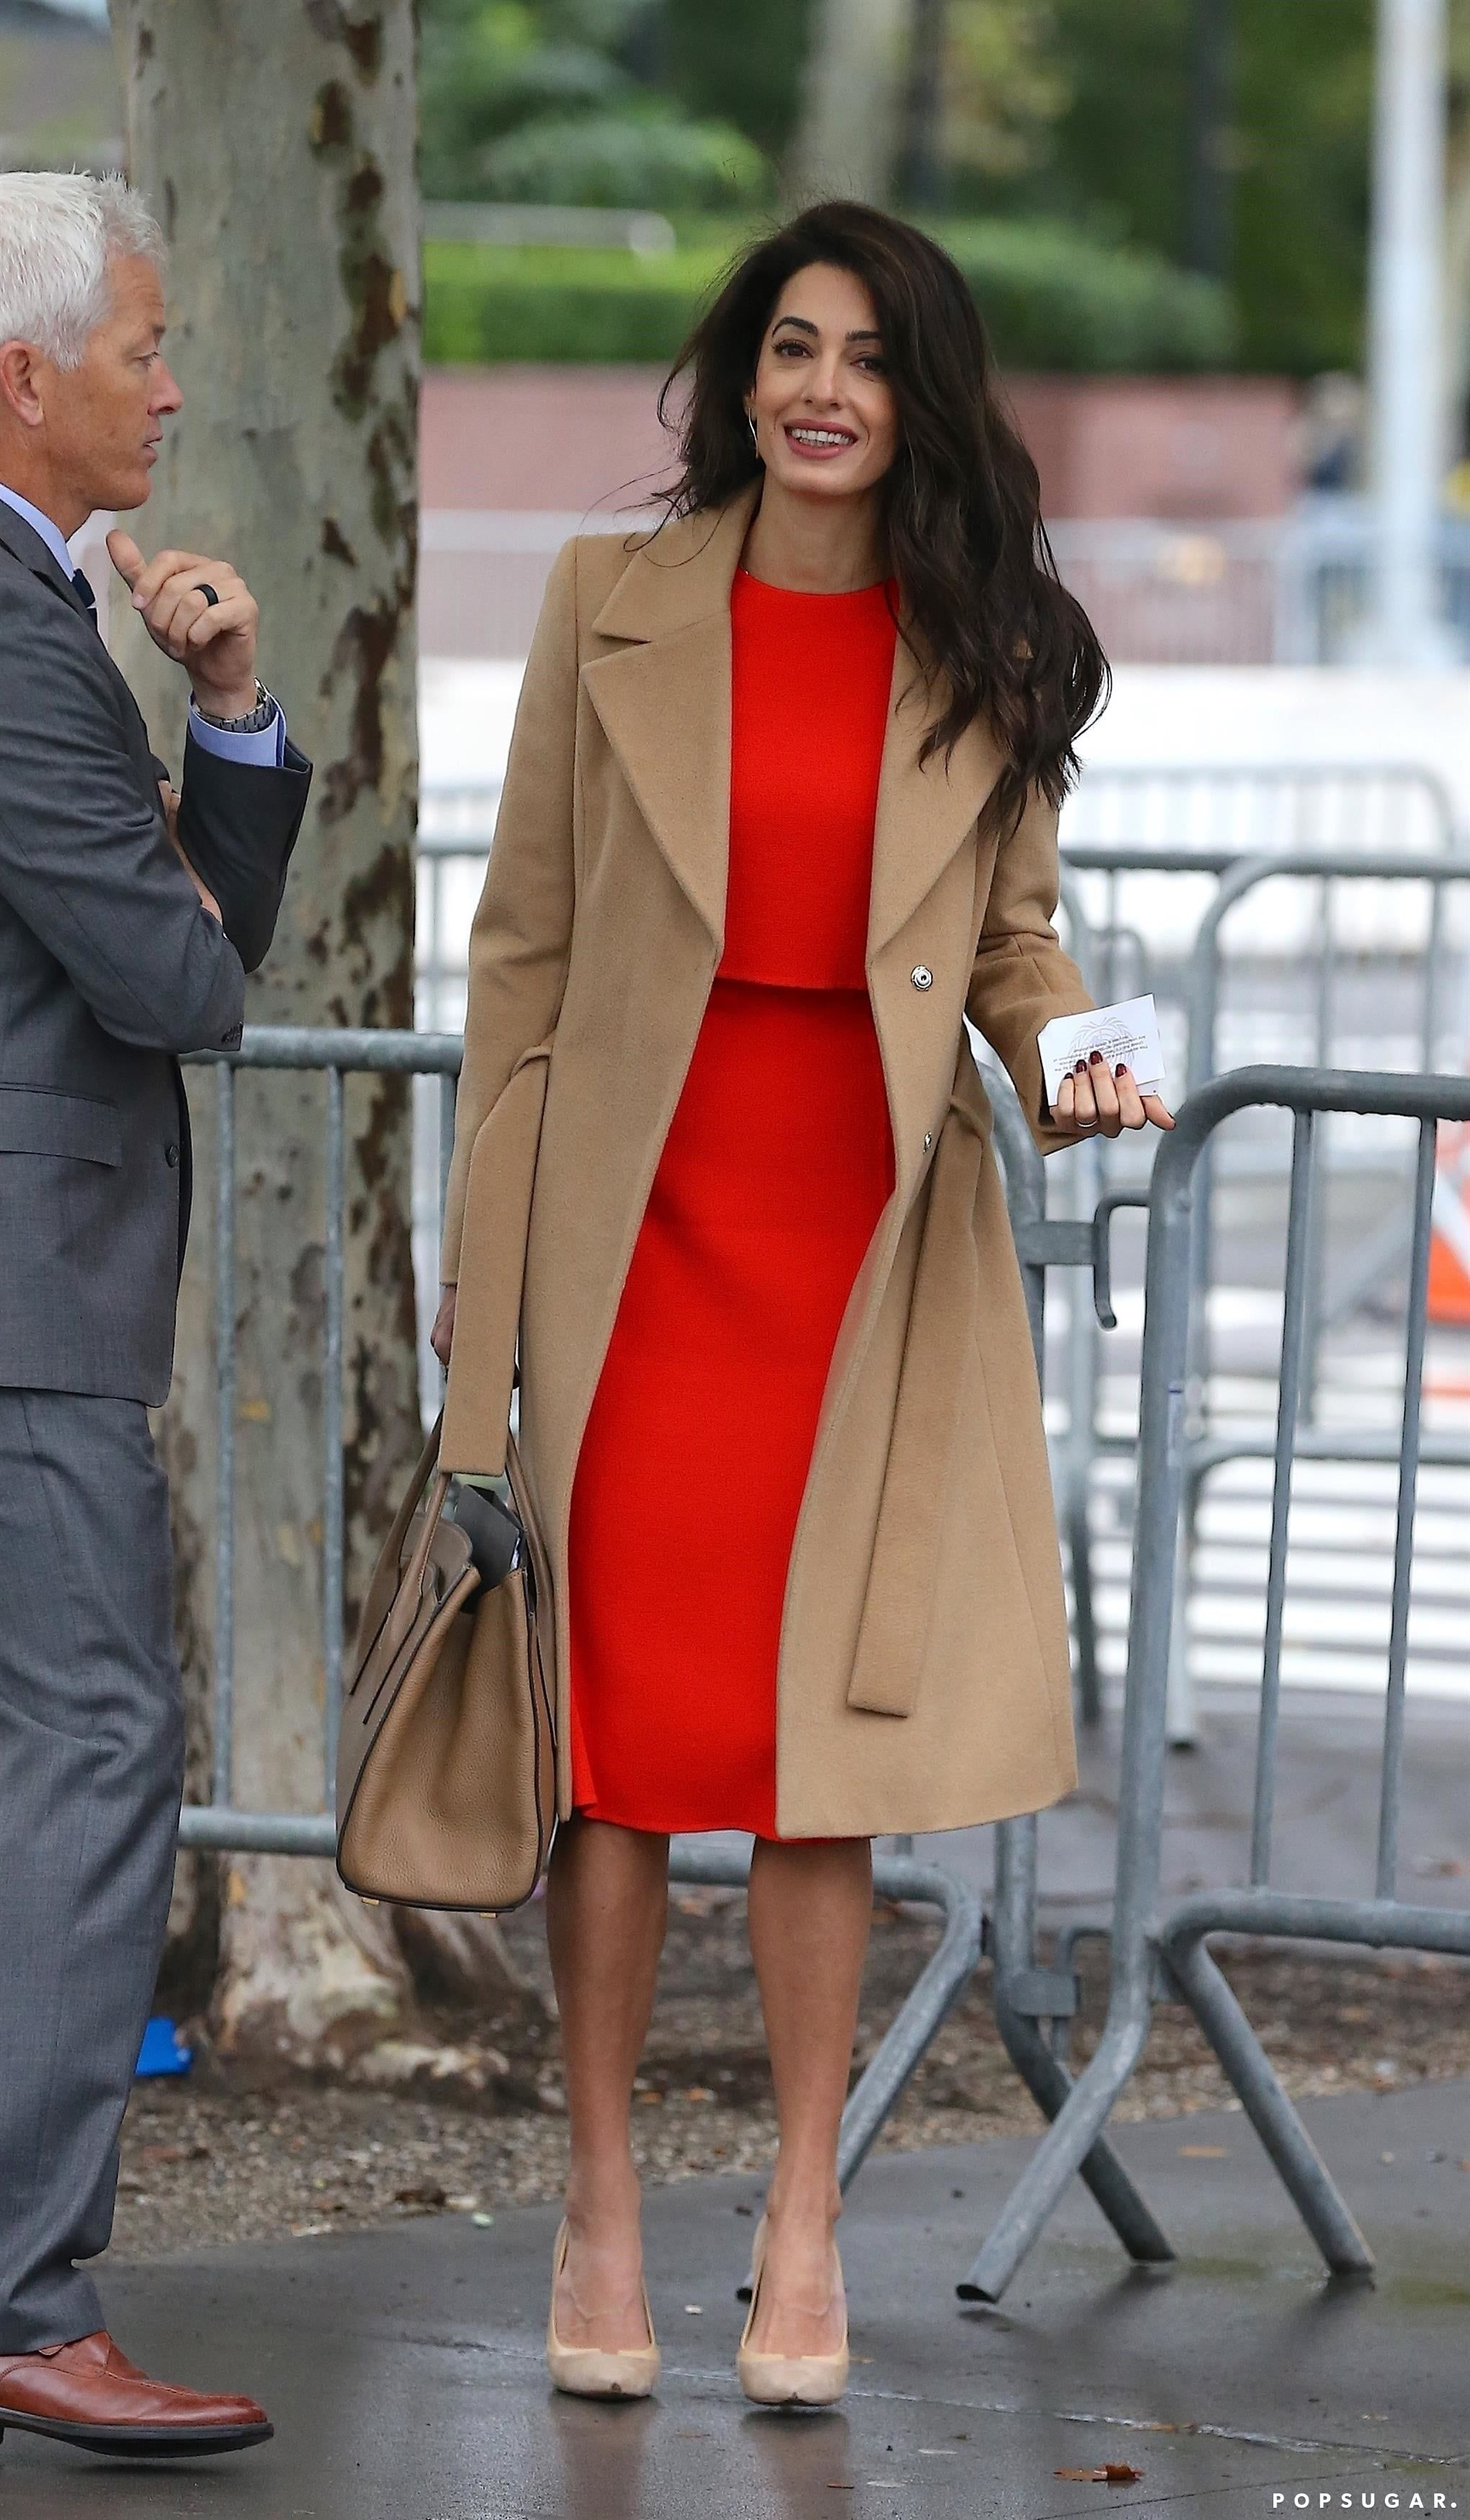 0b7fa2e347 Amal Clooney's Outfit Has Me Singing